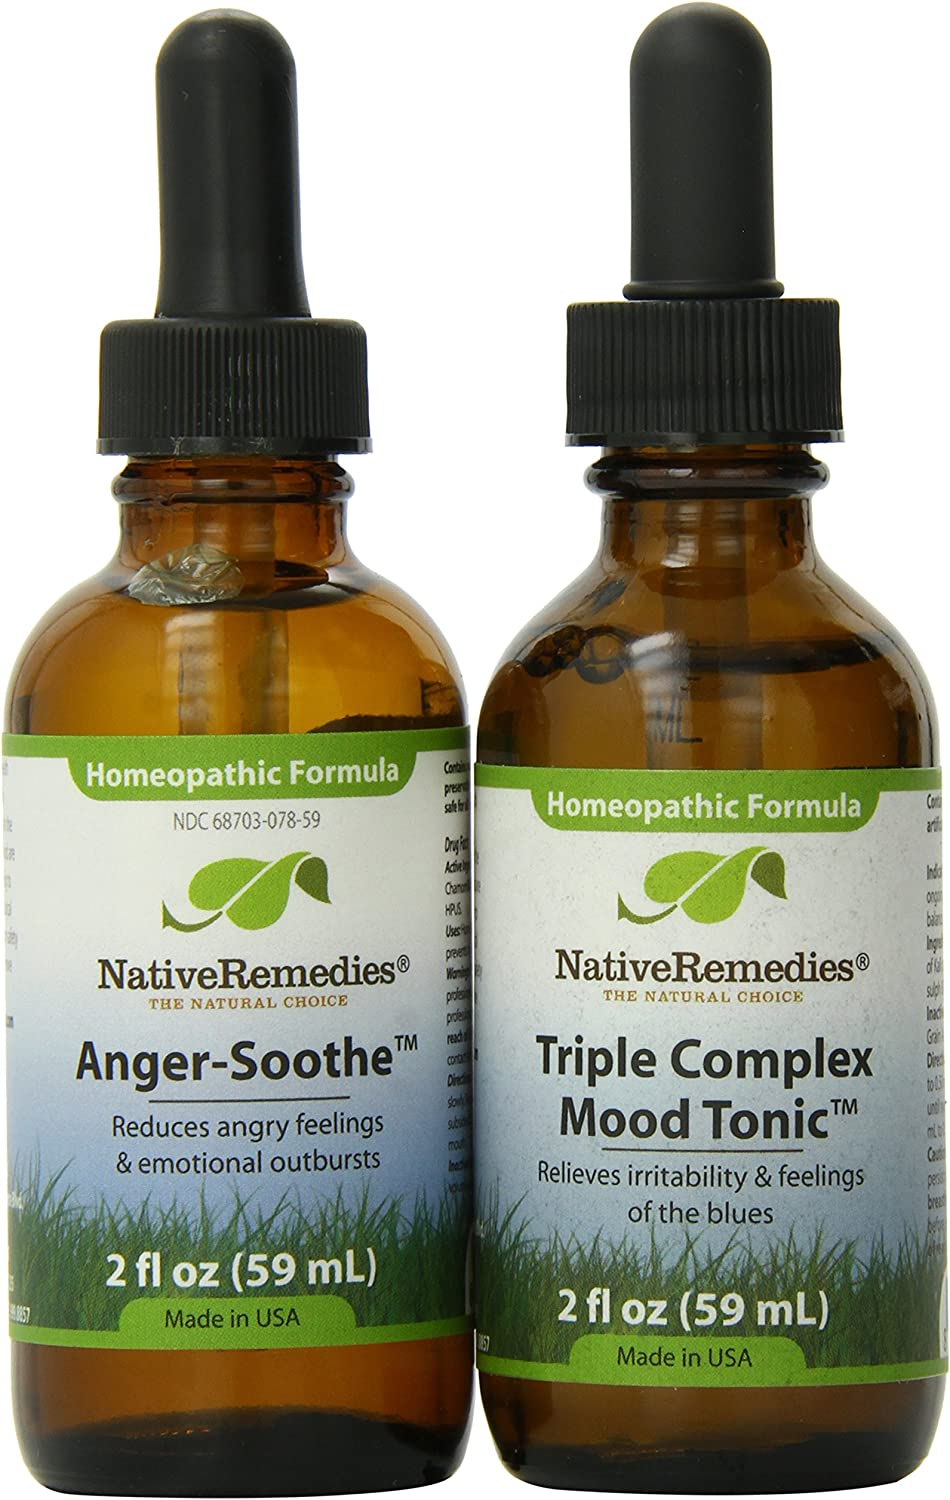 Native Remedies Quality inspection Anger-Soothe and Triple trend rank Combo Tonic Mood Complex